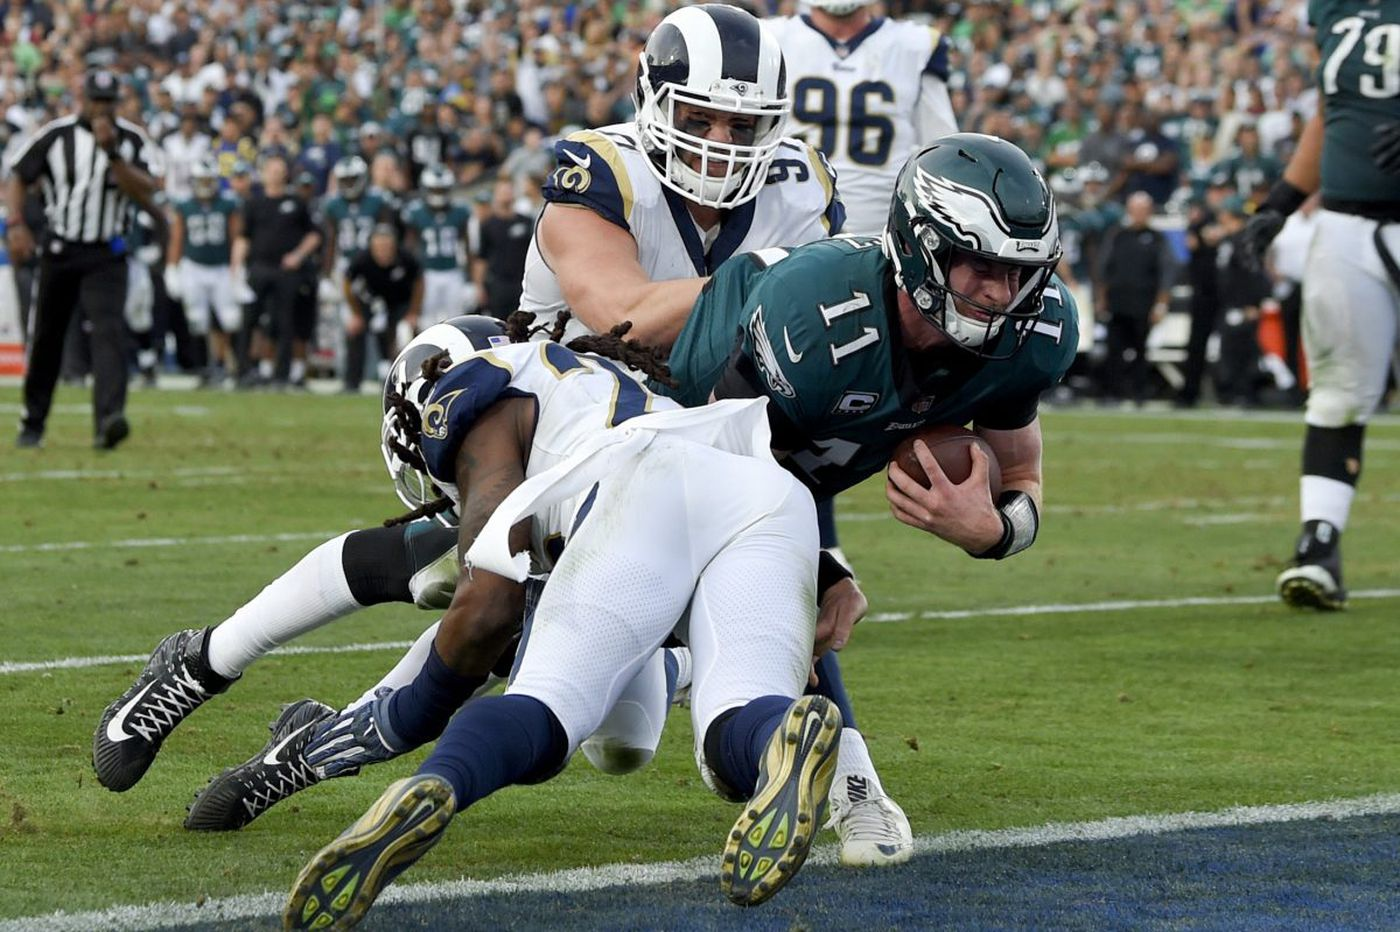 Carson Wentz's ACL tear recovery won't look like the average person's